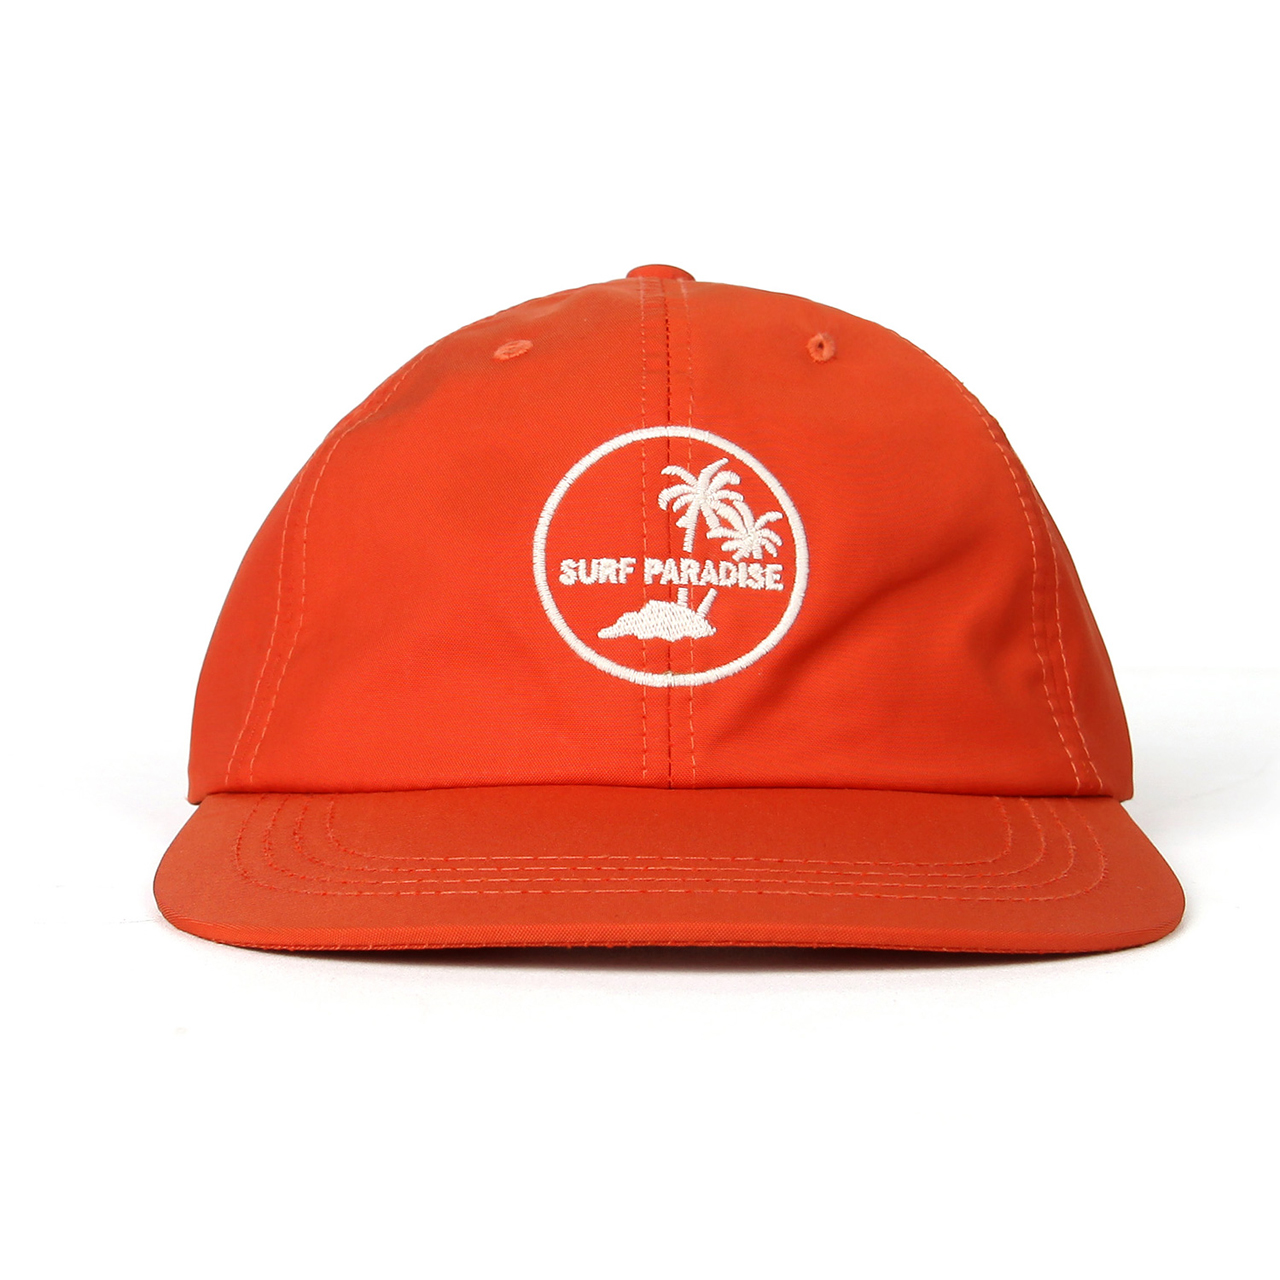 SURF PARADISE CAP-ORANGE